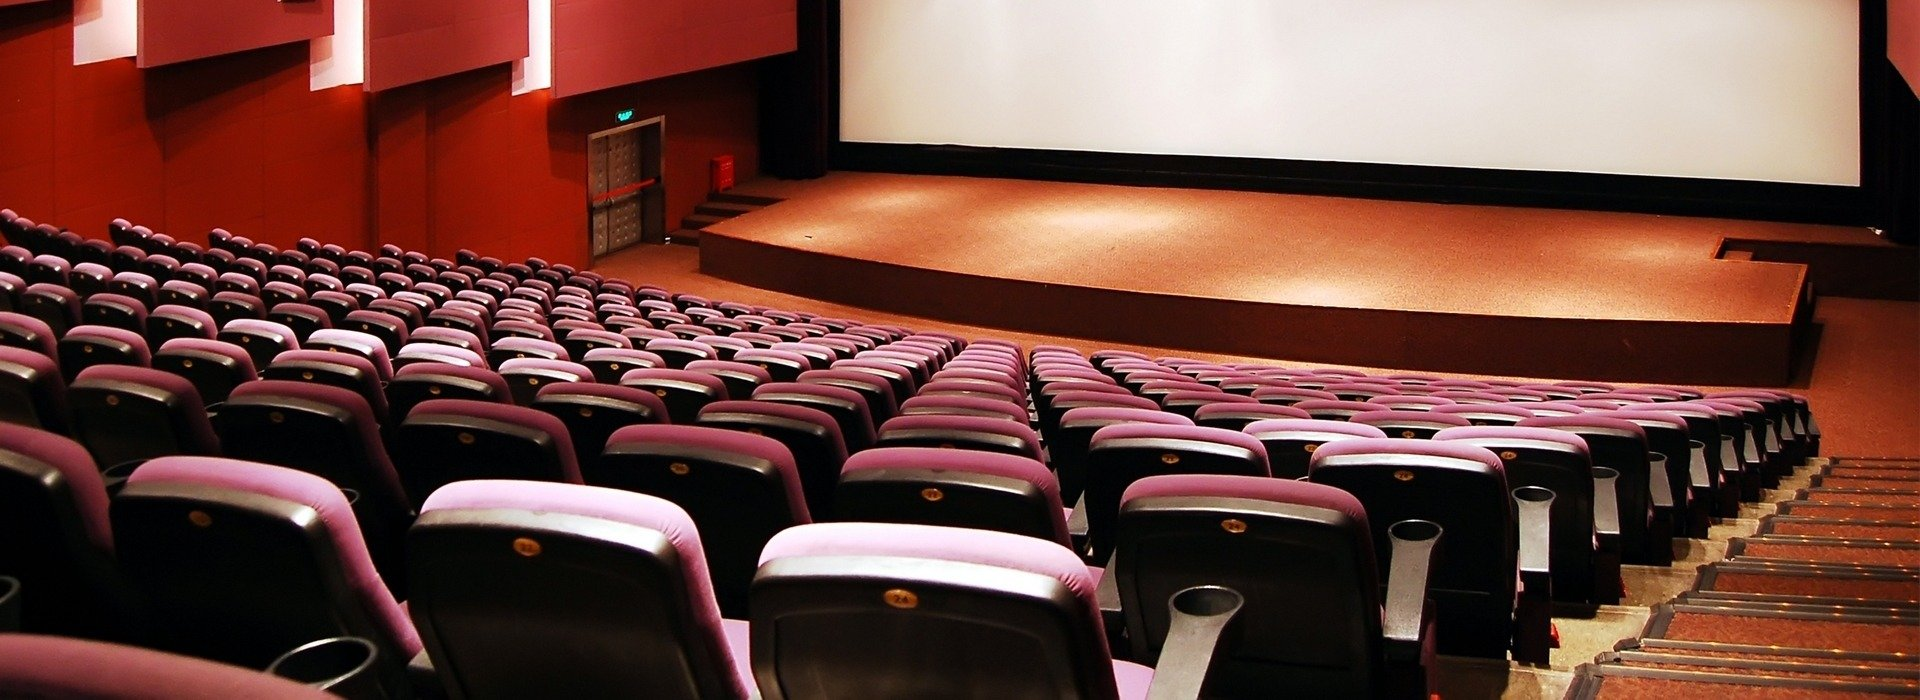 Vörösmarty Cinema